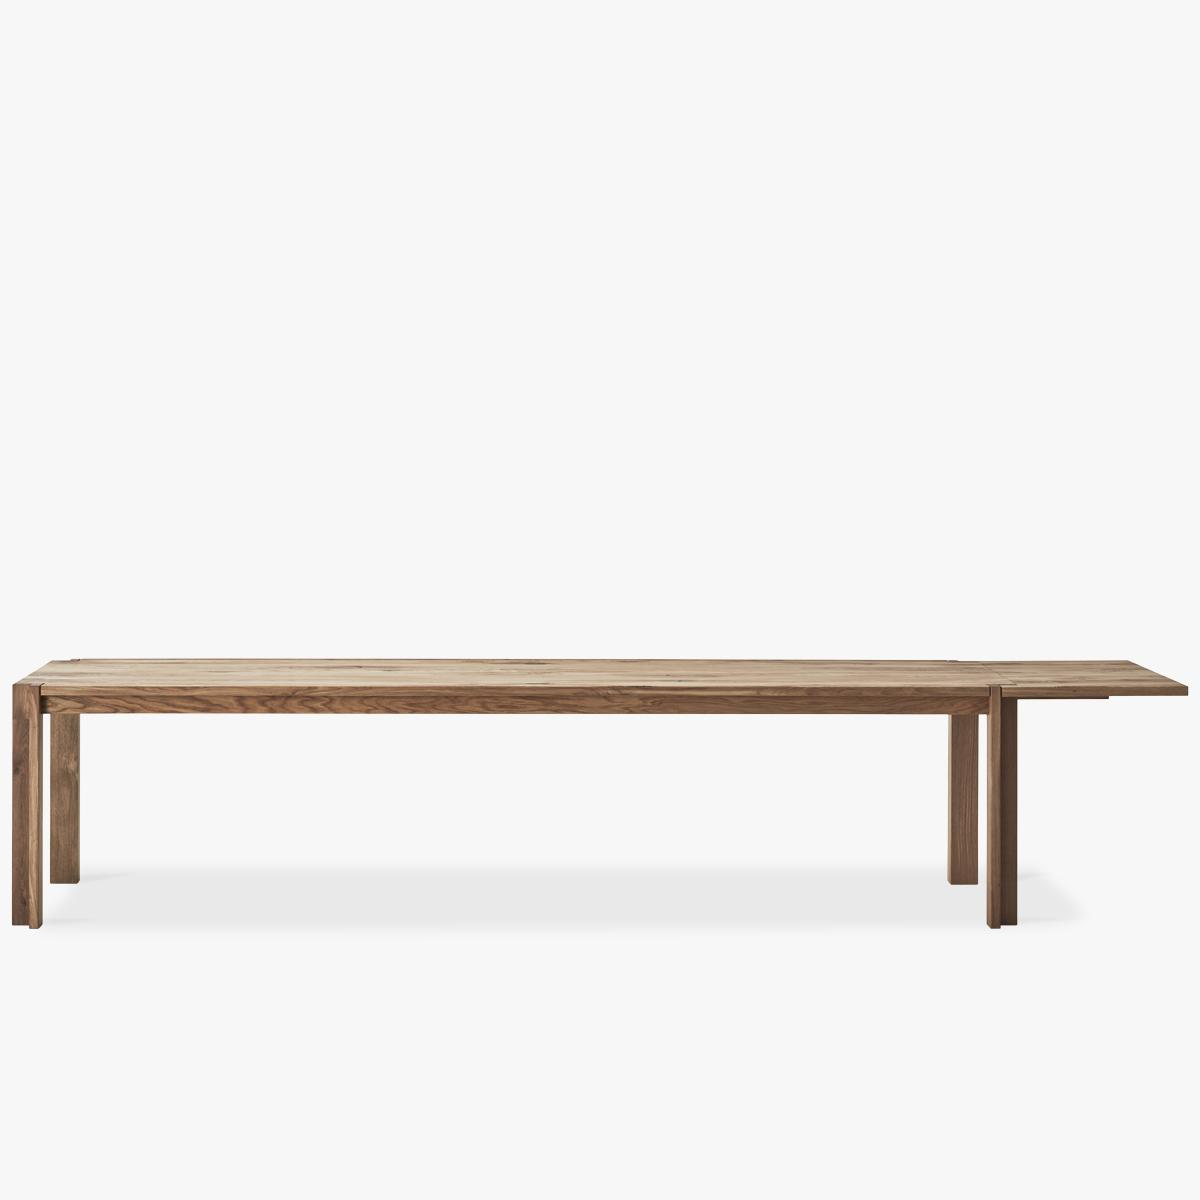 Jeppe Utzon Table_from side_oak_extension-1200